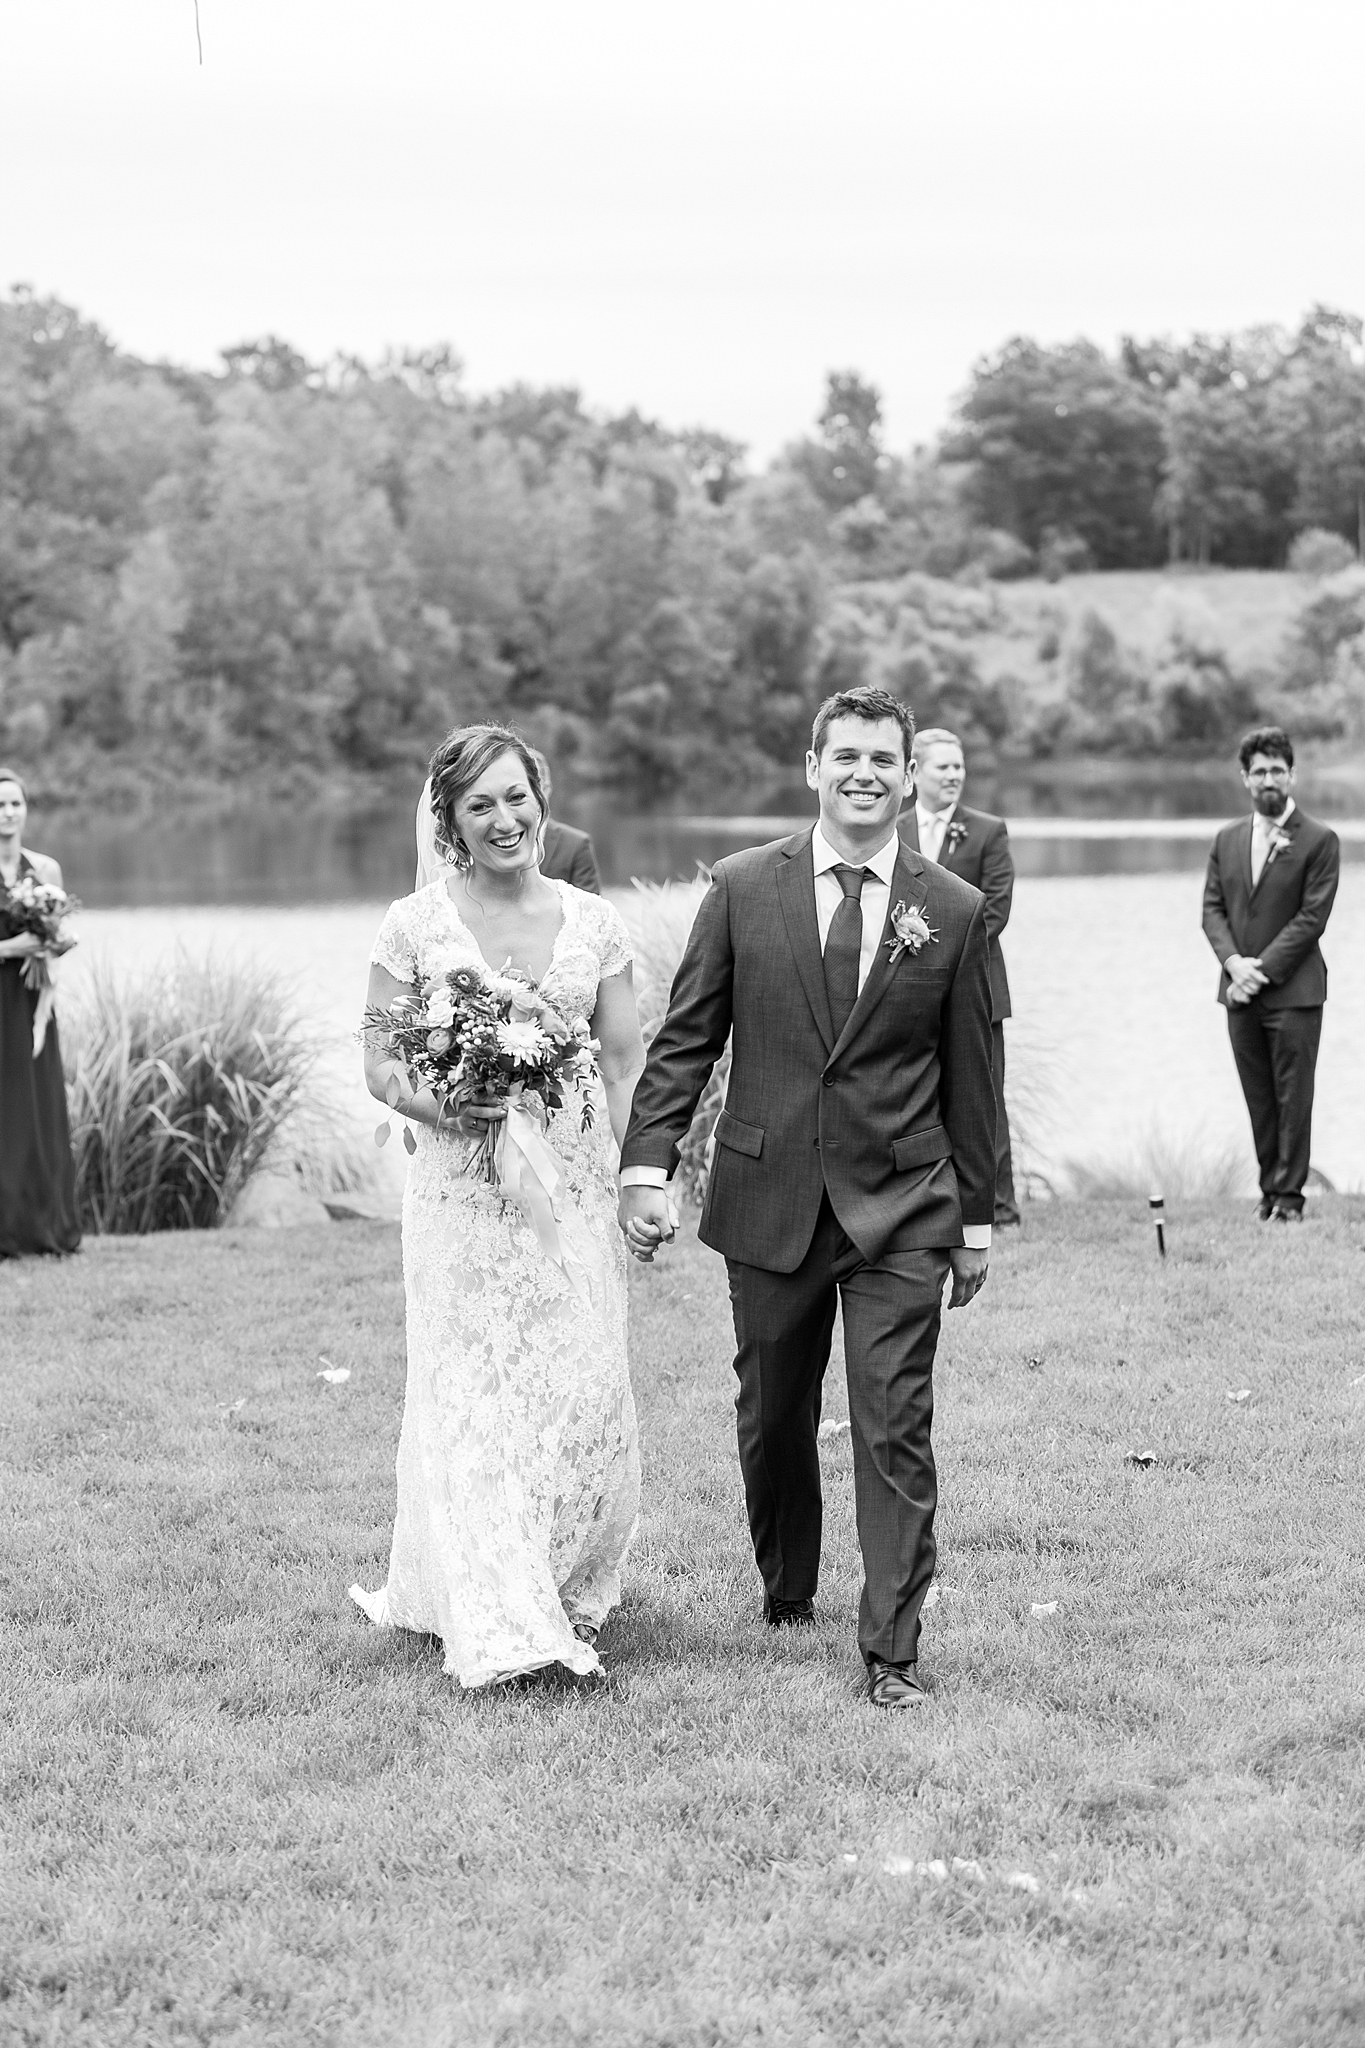 private-lakefront-estate-wedding-photography-in-ann-arbor-michigan-by-courtney-carolyn-photography_0026.jpg